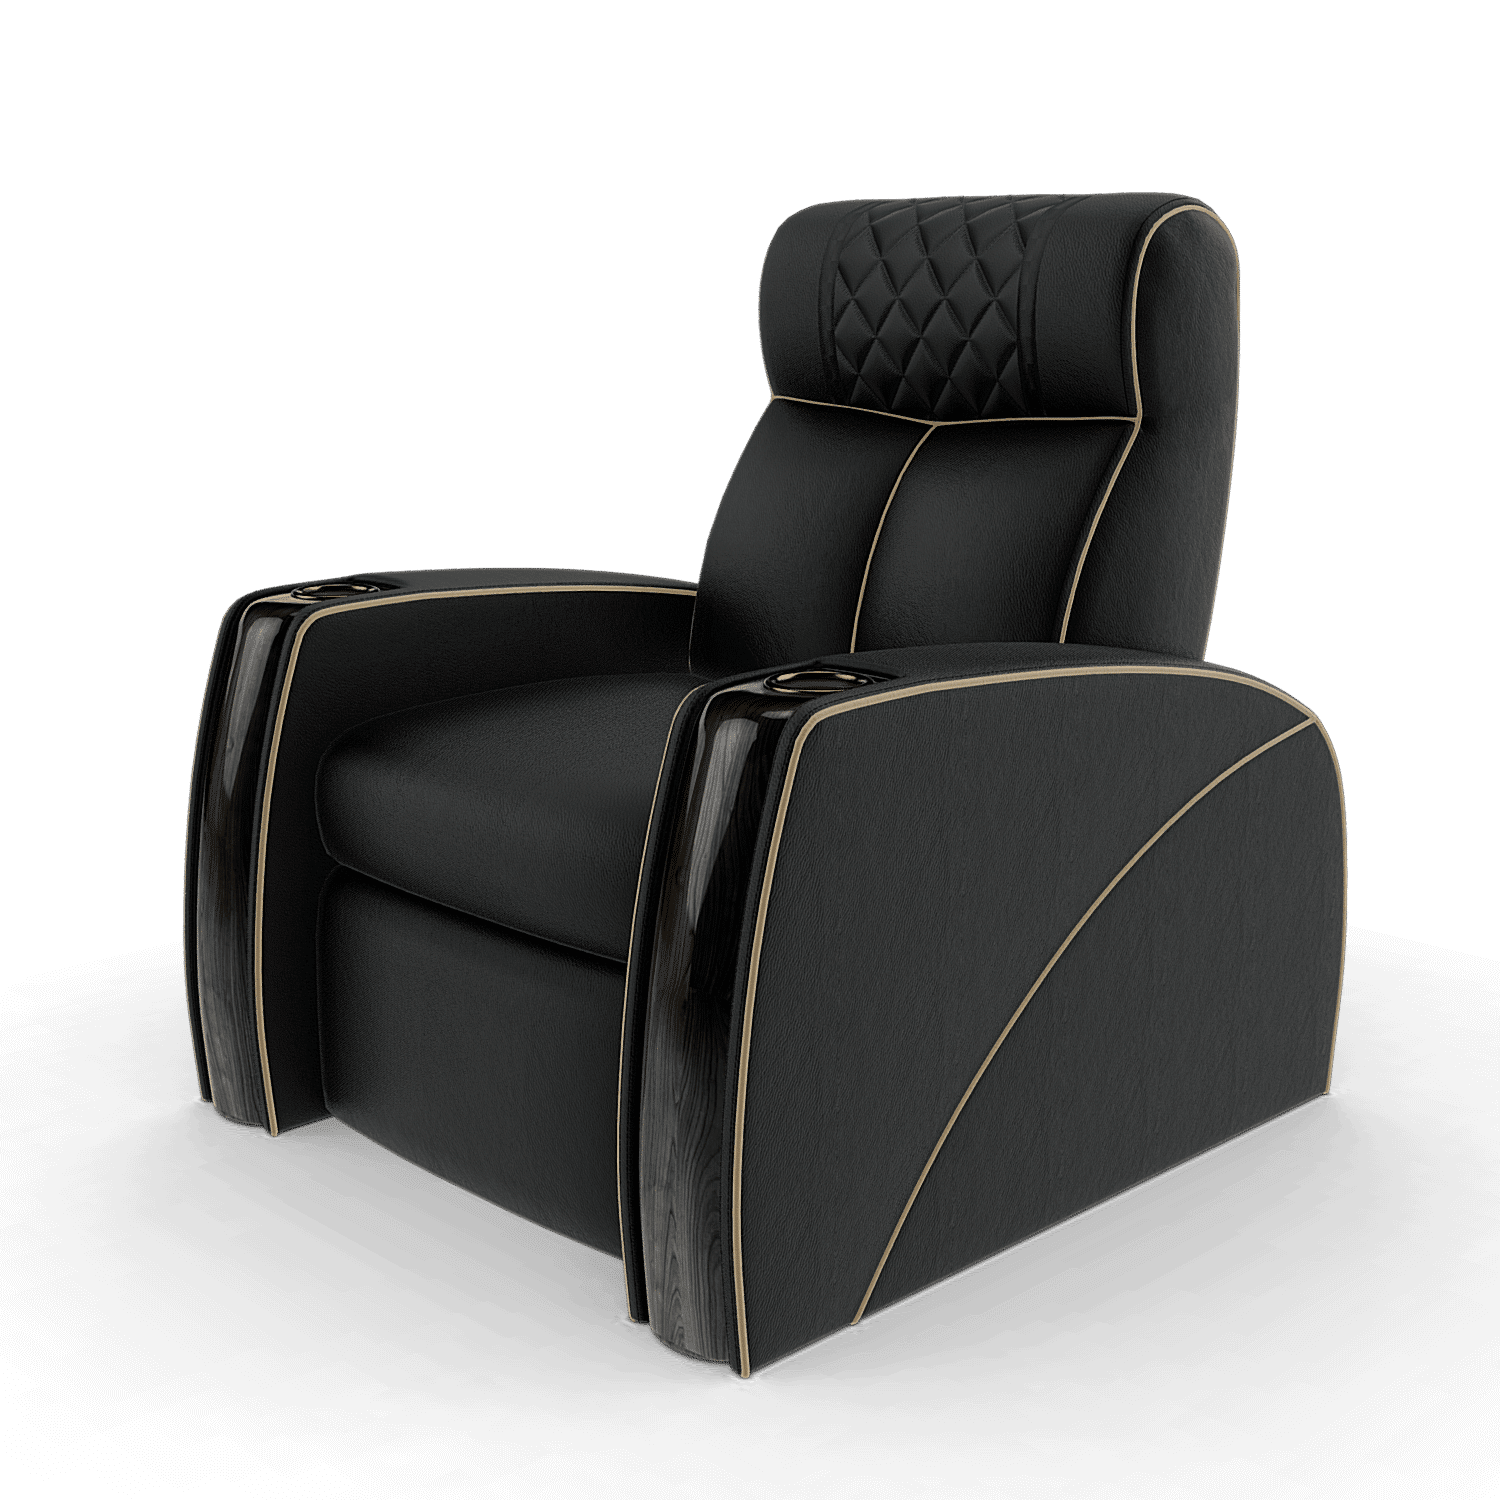 home_theater_seating j9_black